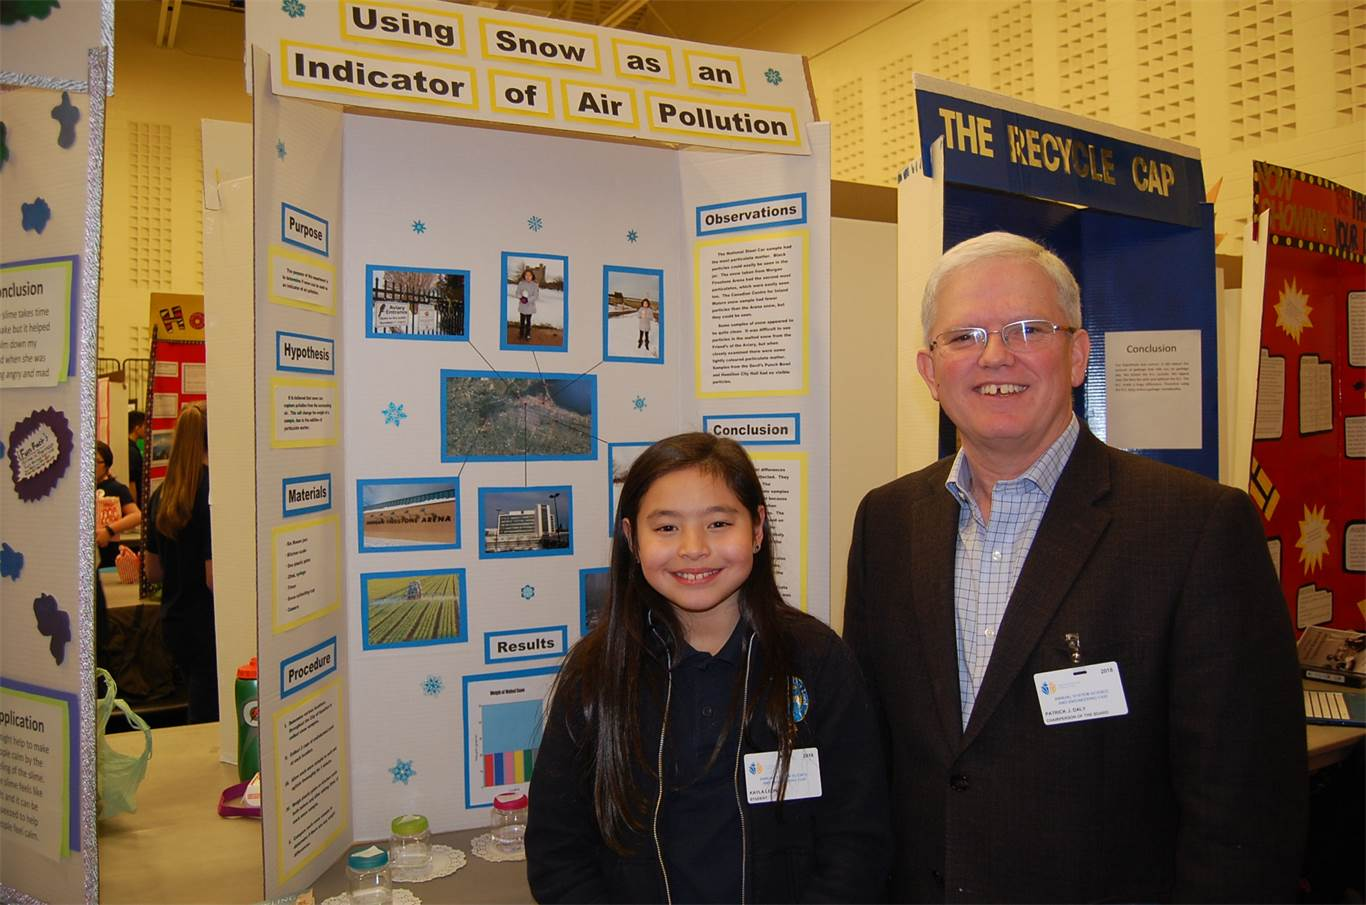 Kayla Leon, a Grade 5 student at Annunciation of Our Lord Catholic Elementary School, shown here with Chairperson Patrick Daly, used snow to test air pollution.